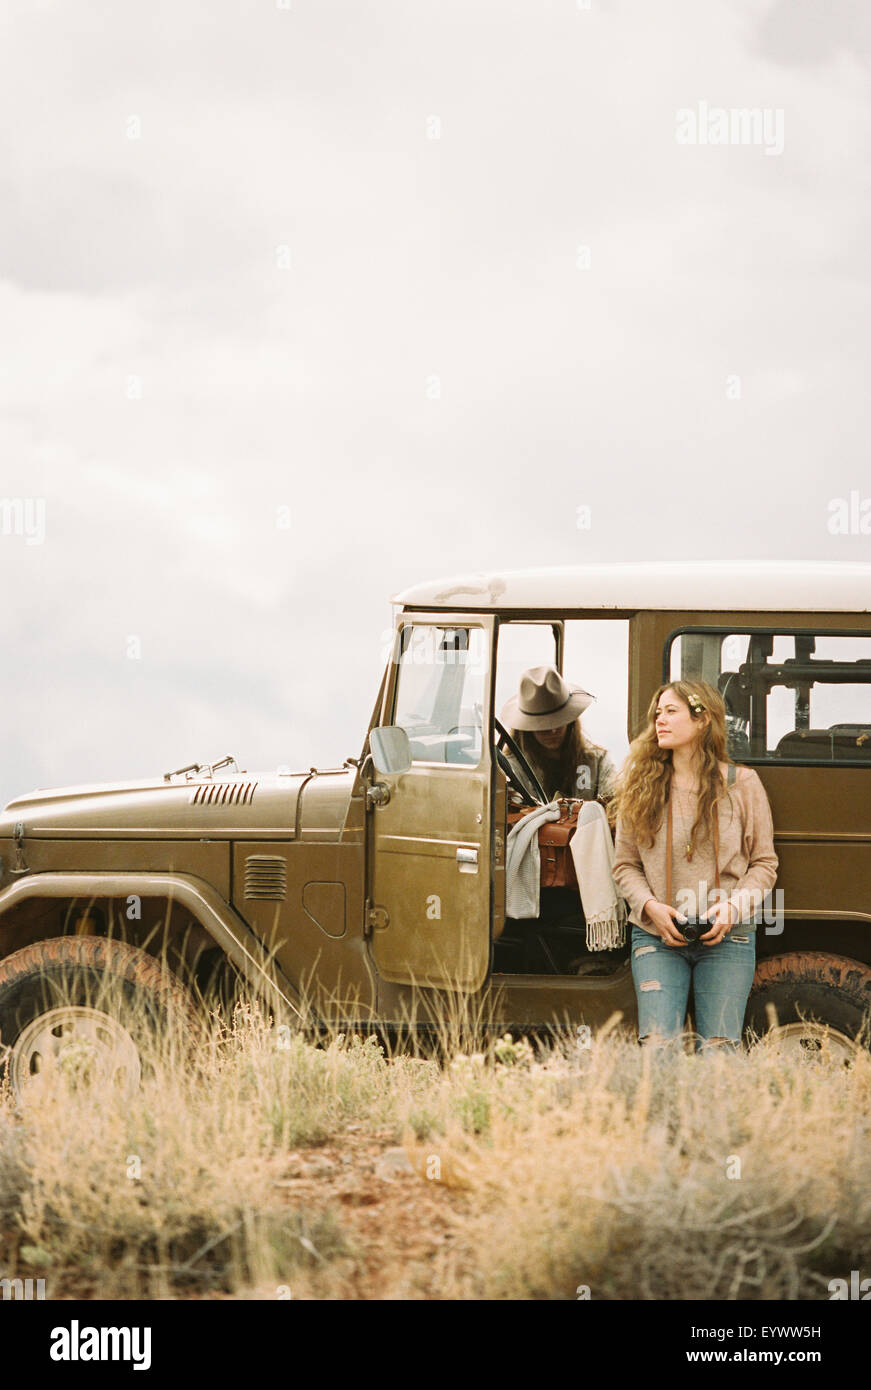 Two women by a 4x4 in a desert, taking a break from the road. - Stock Image